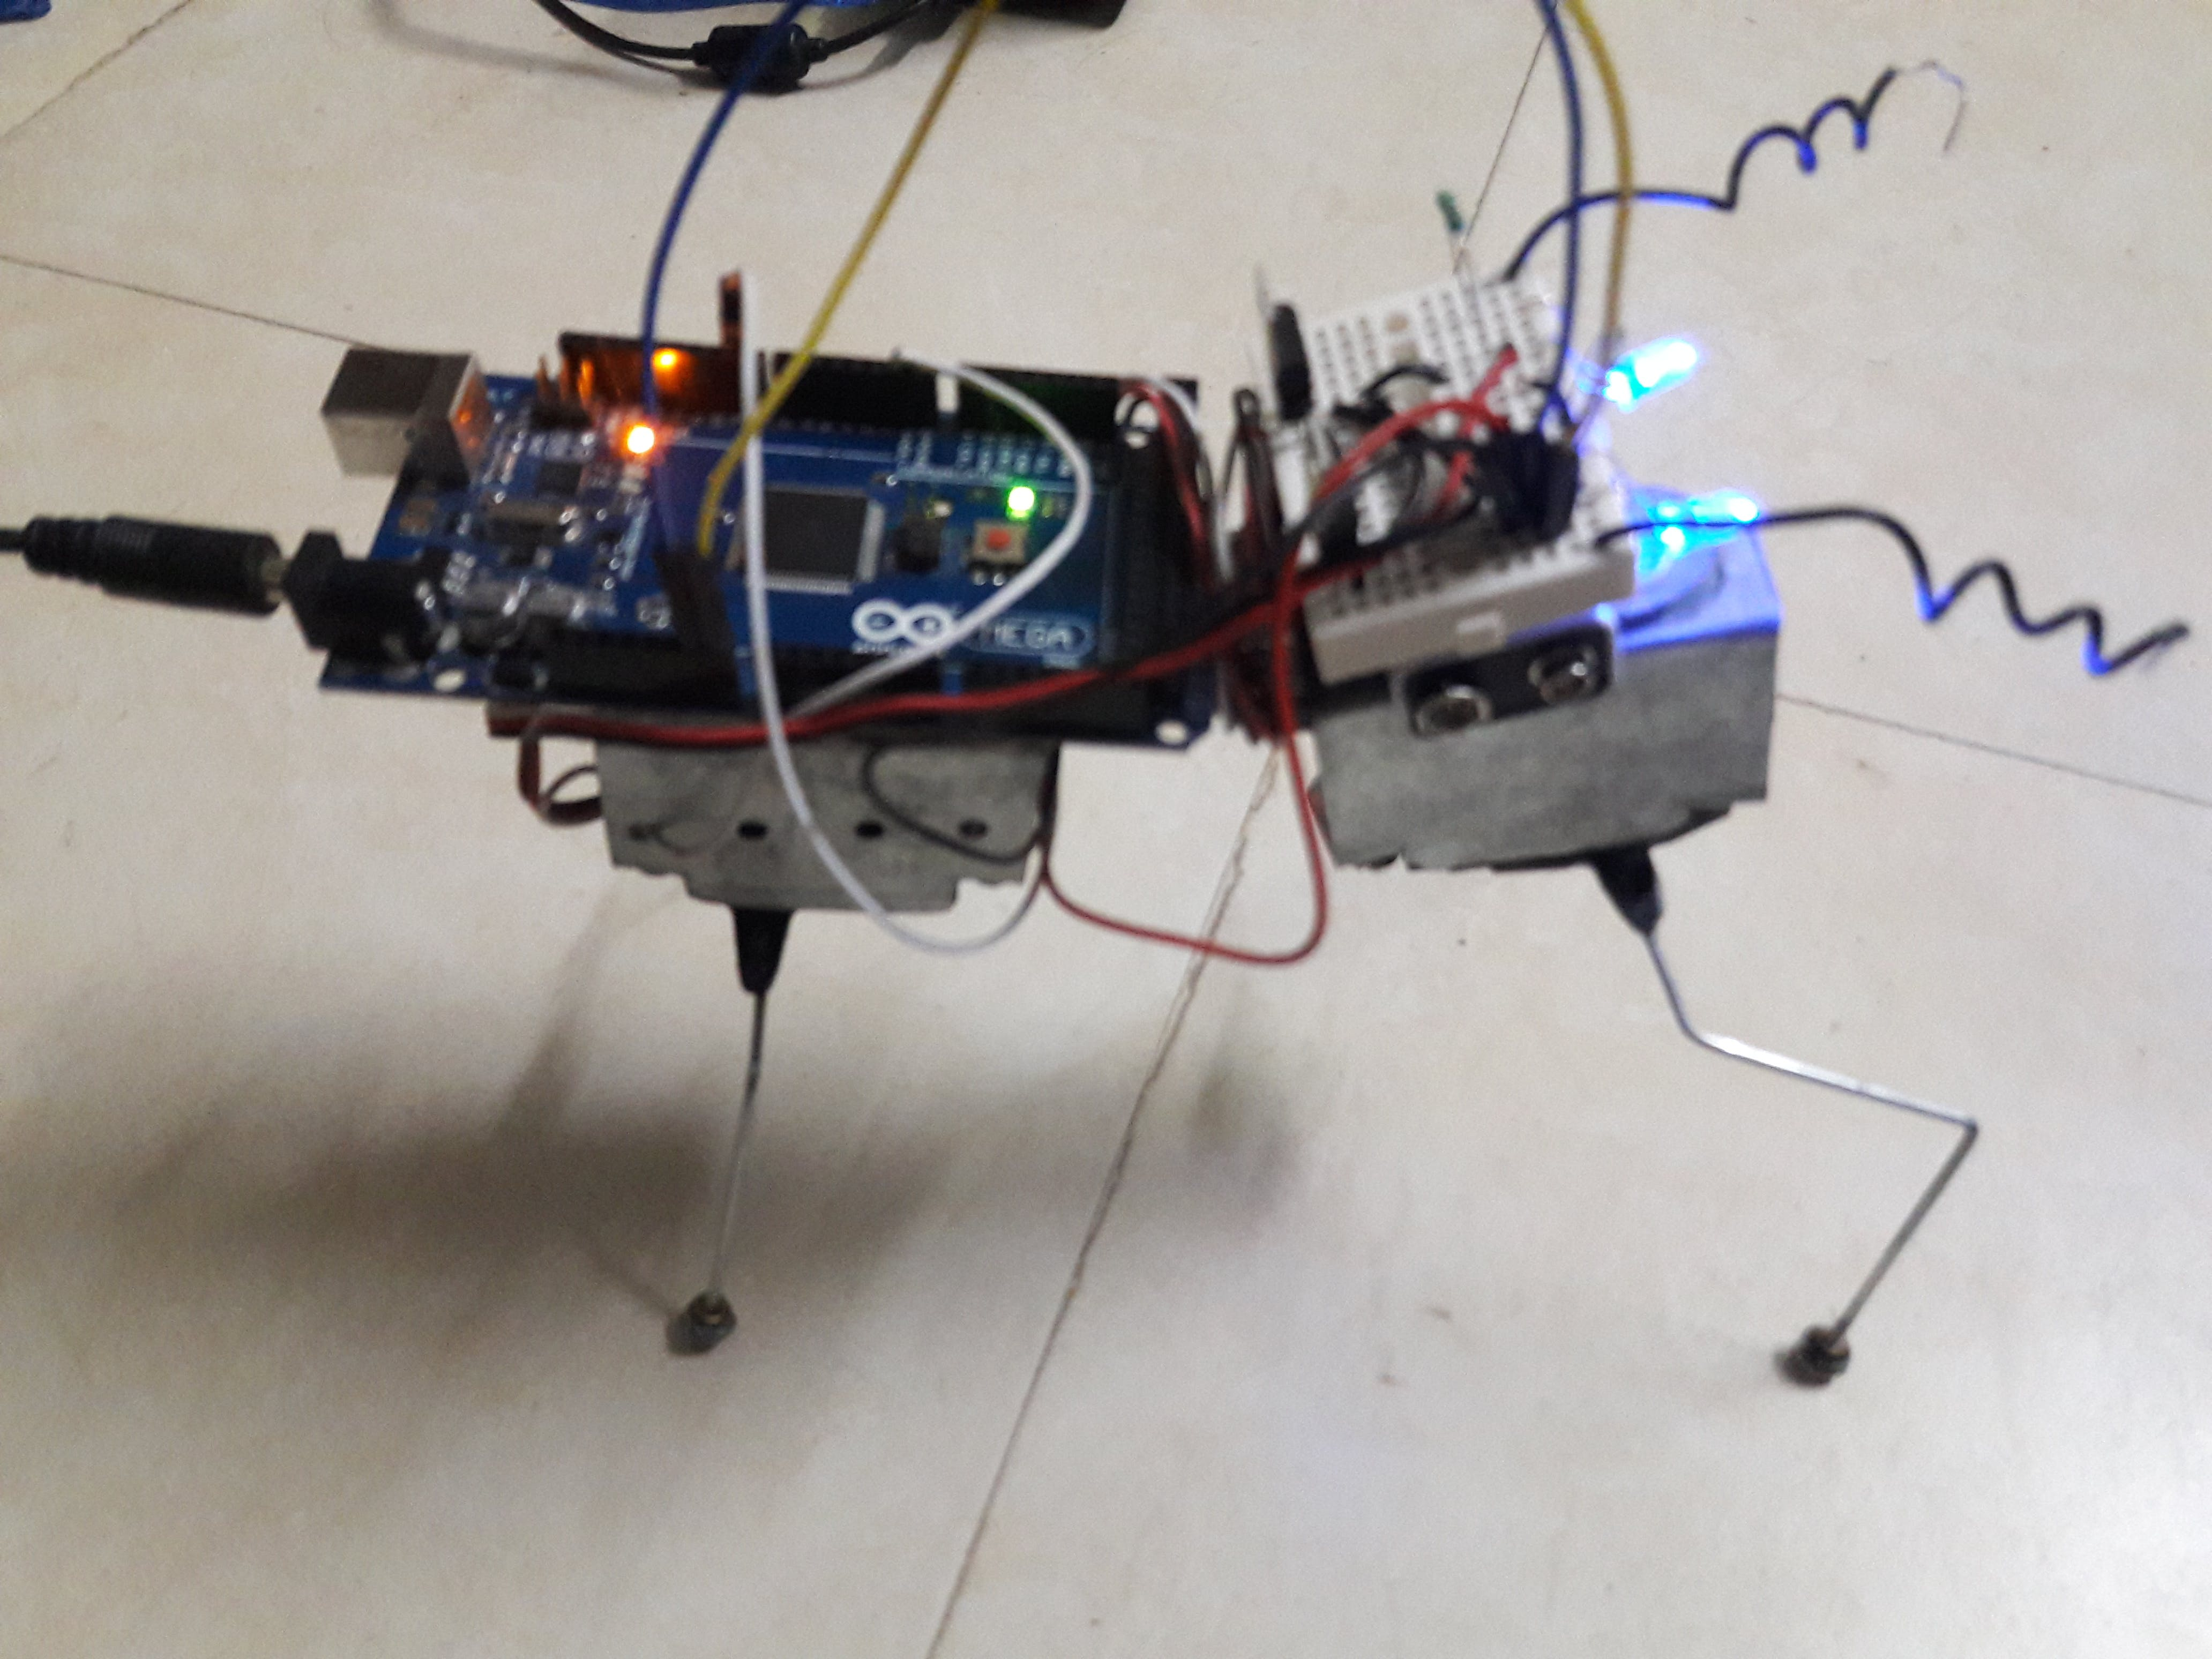 a project building a robot imitating an ant Pentagon project seeks to build autonomous to build algorithms such that a robot or machine can perceive the surrounding environment like a bird or an ant.